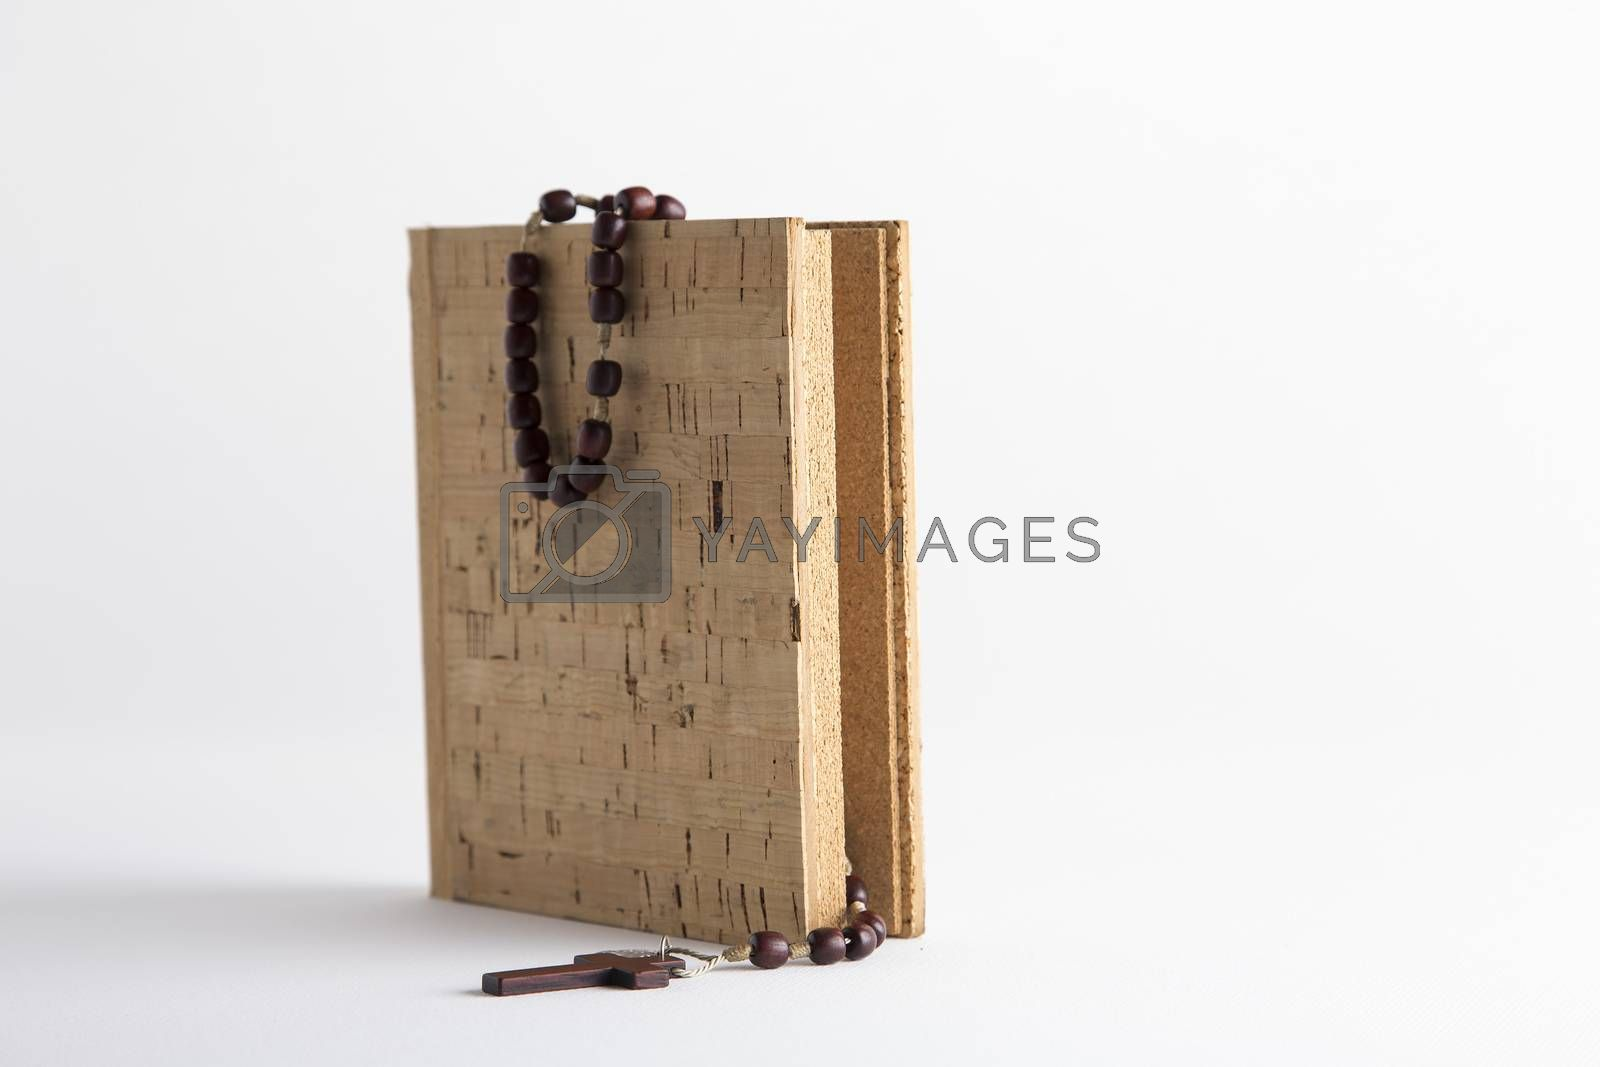 Rosary beads necklace on blank cork book